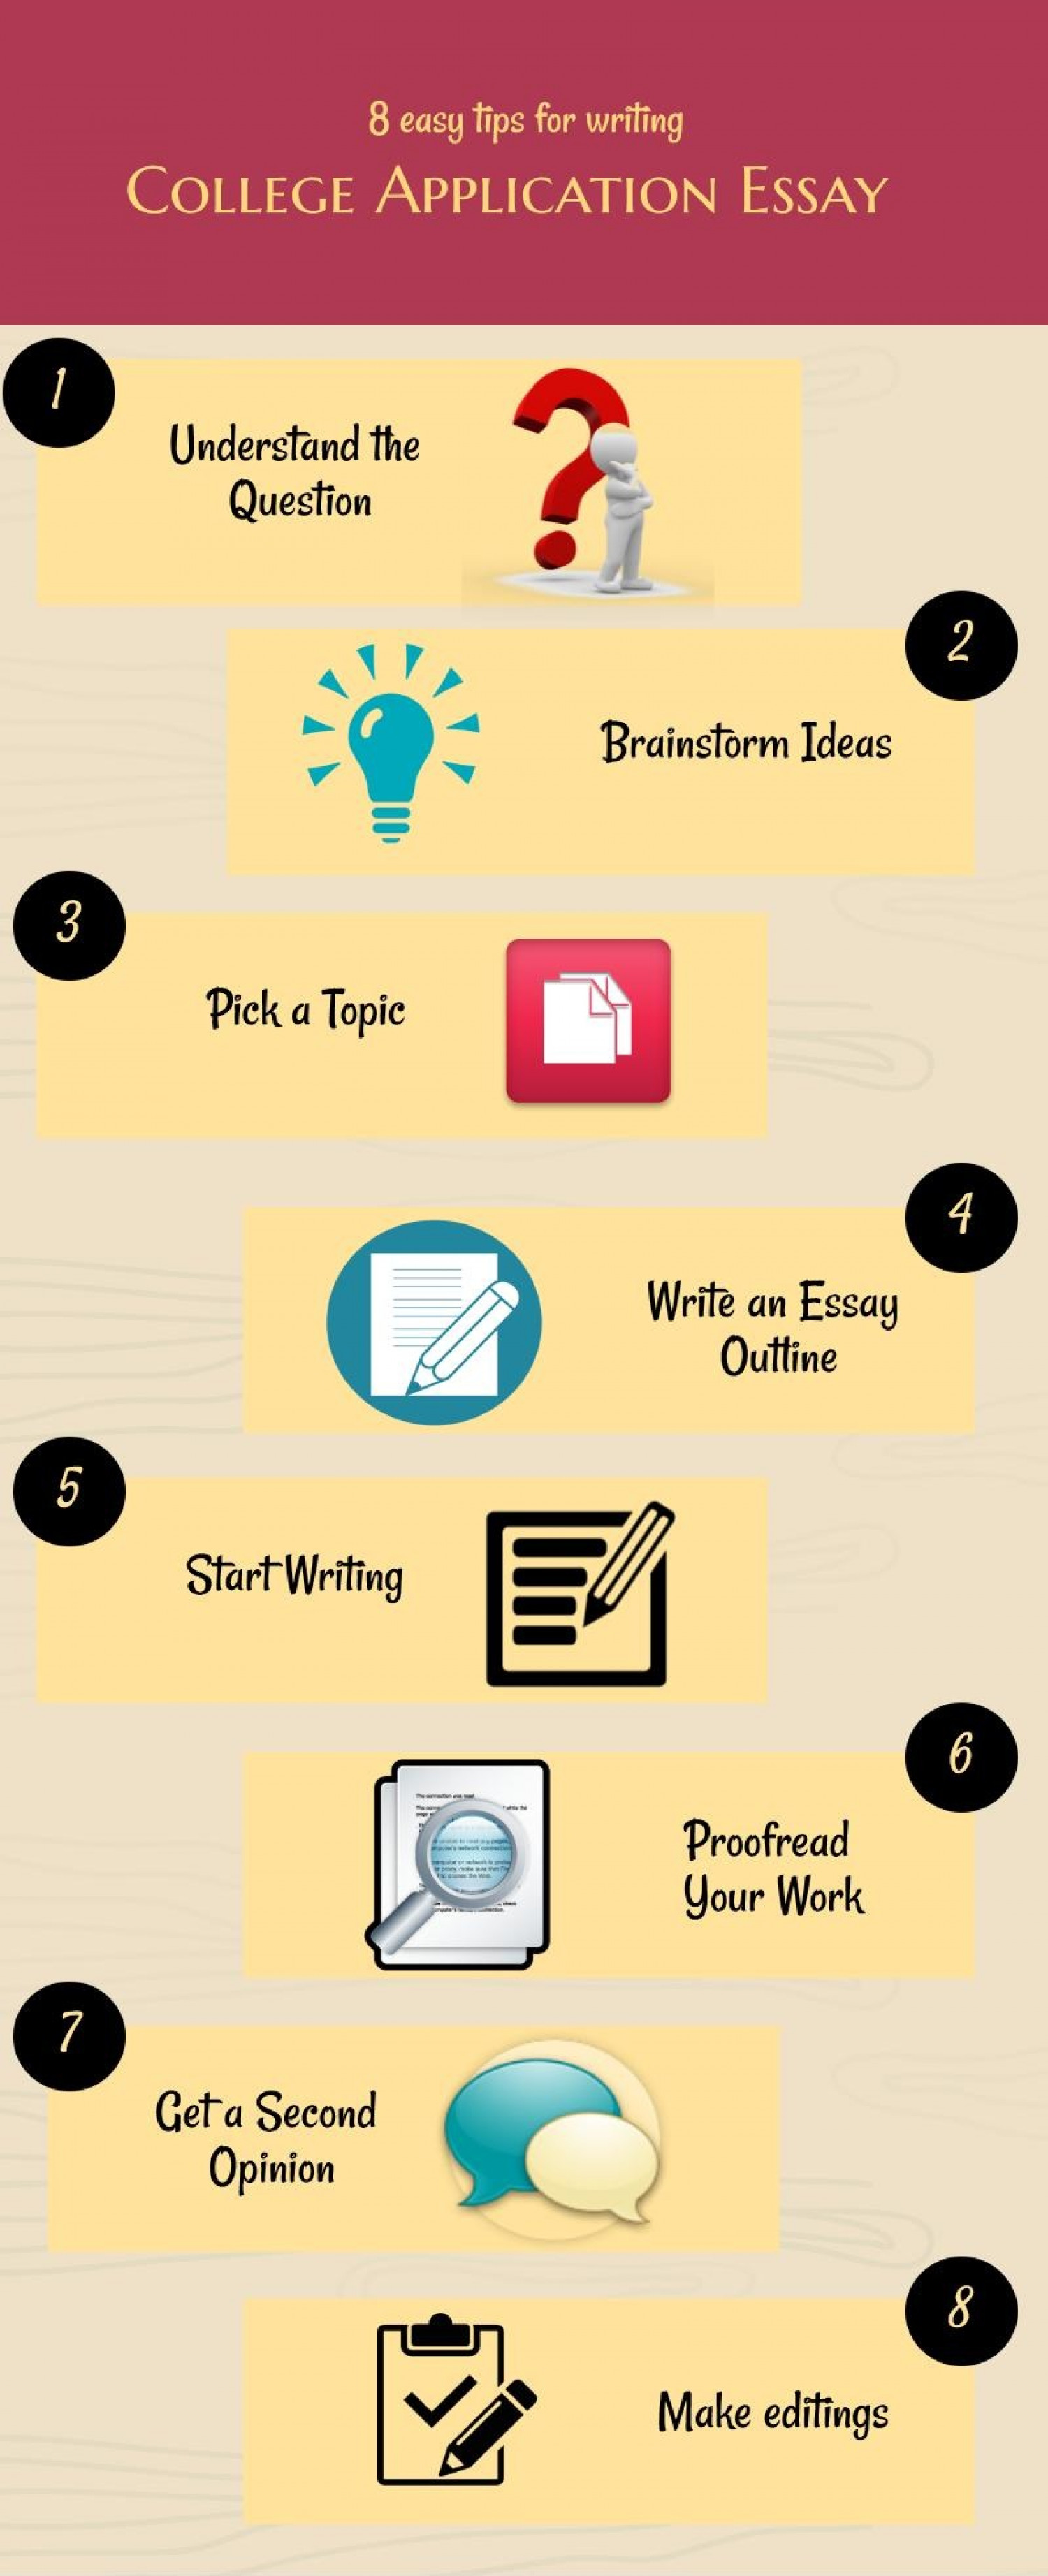 Tips For Writing The College Application Essay